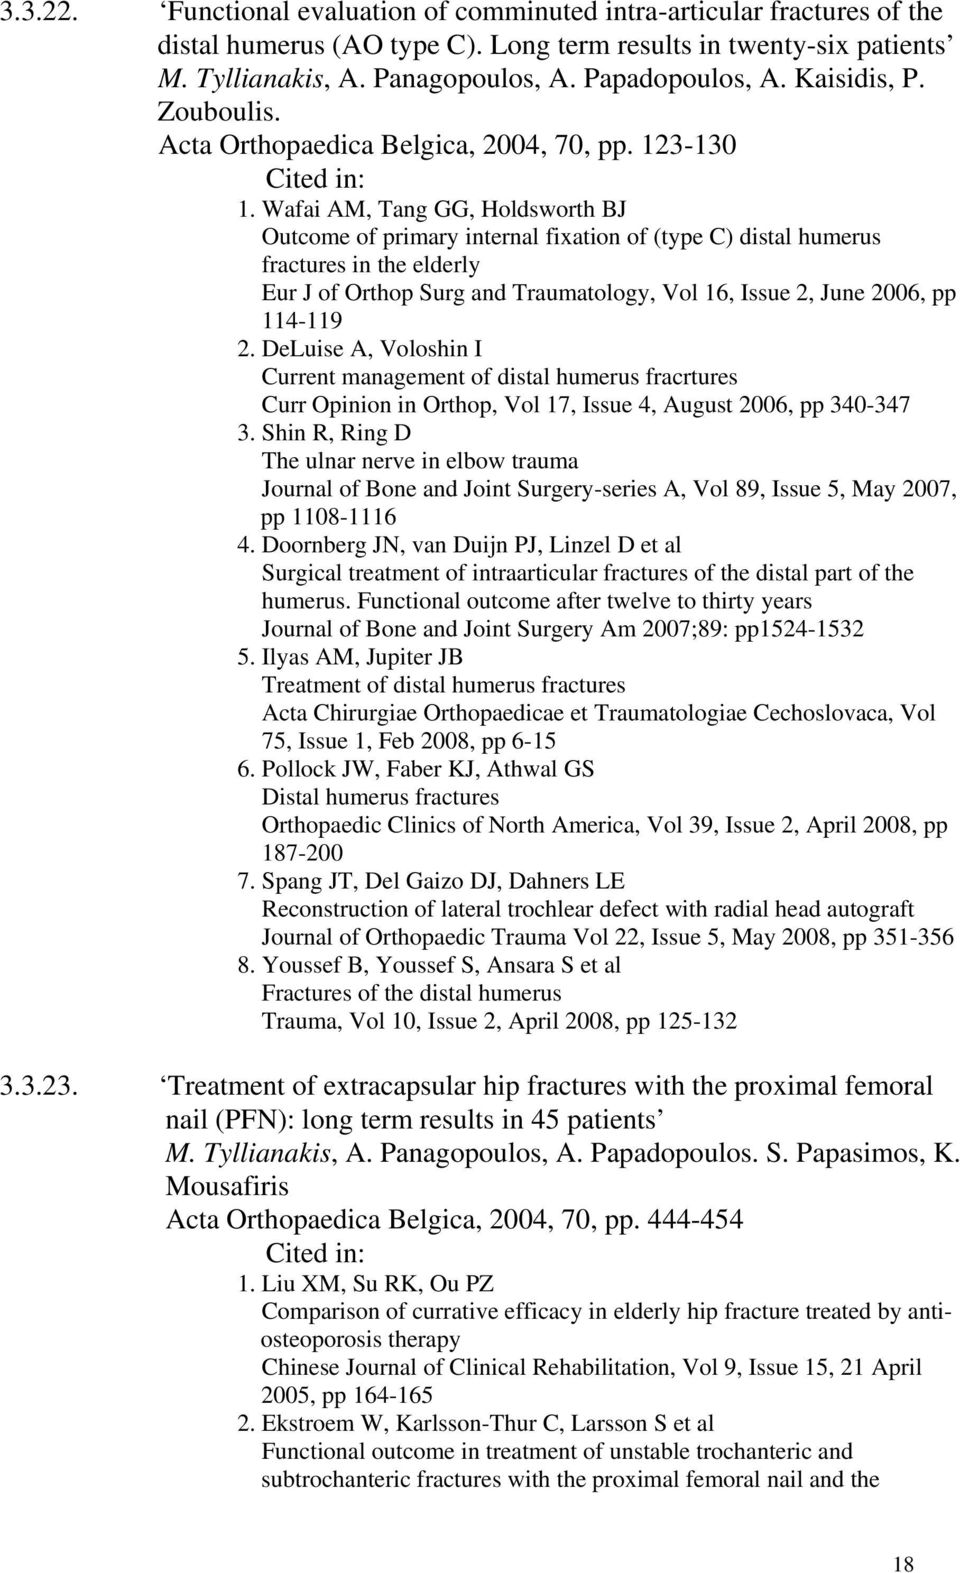 Wafai AM, Tang GG, Holdsworth BJ Outcome of primary internal fixation of (type C) distal humerus fractures in the elderly Eur J of Orthop Surg and Traumatology, Vol 16, Issue 2, June 2006, pp 114-119